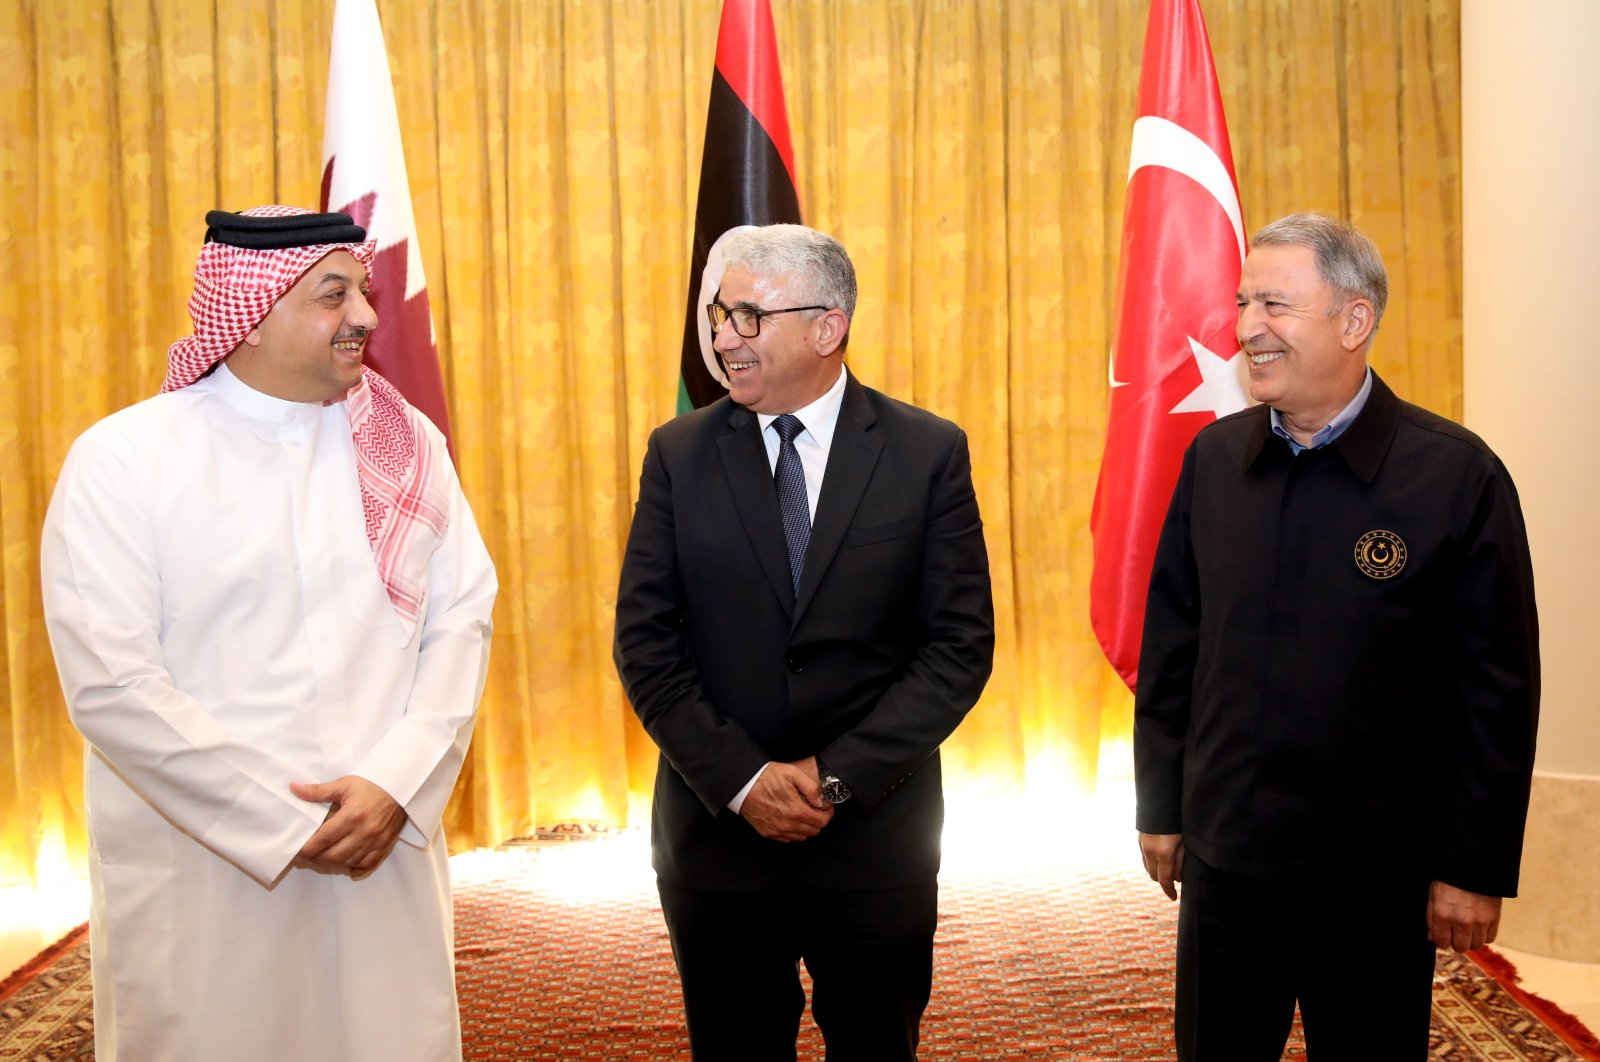 Interior Minister of Libya's UN-recognised Government of National Accord (GNA) Fathi Bashagha (C) meets with Turkish Defense Minister Hulusi Akar (R), and his Qatari conterpart Khalid bin Muhammad Al-Attiyah (L) in the capital Tripoli, Aug. 17, 2020.